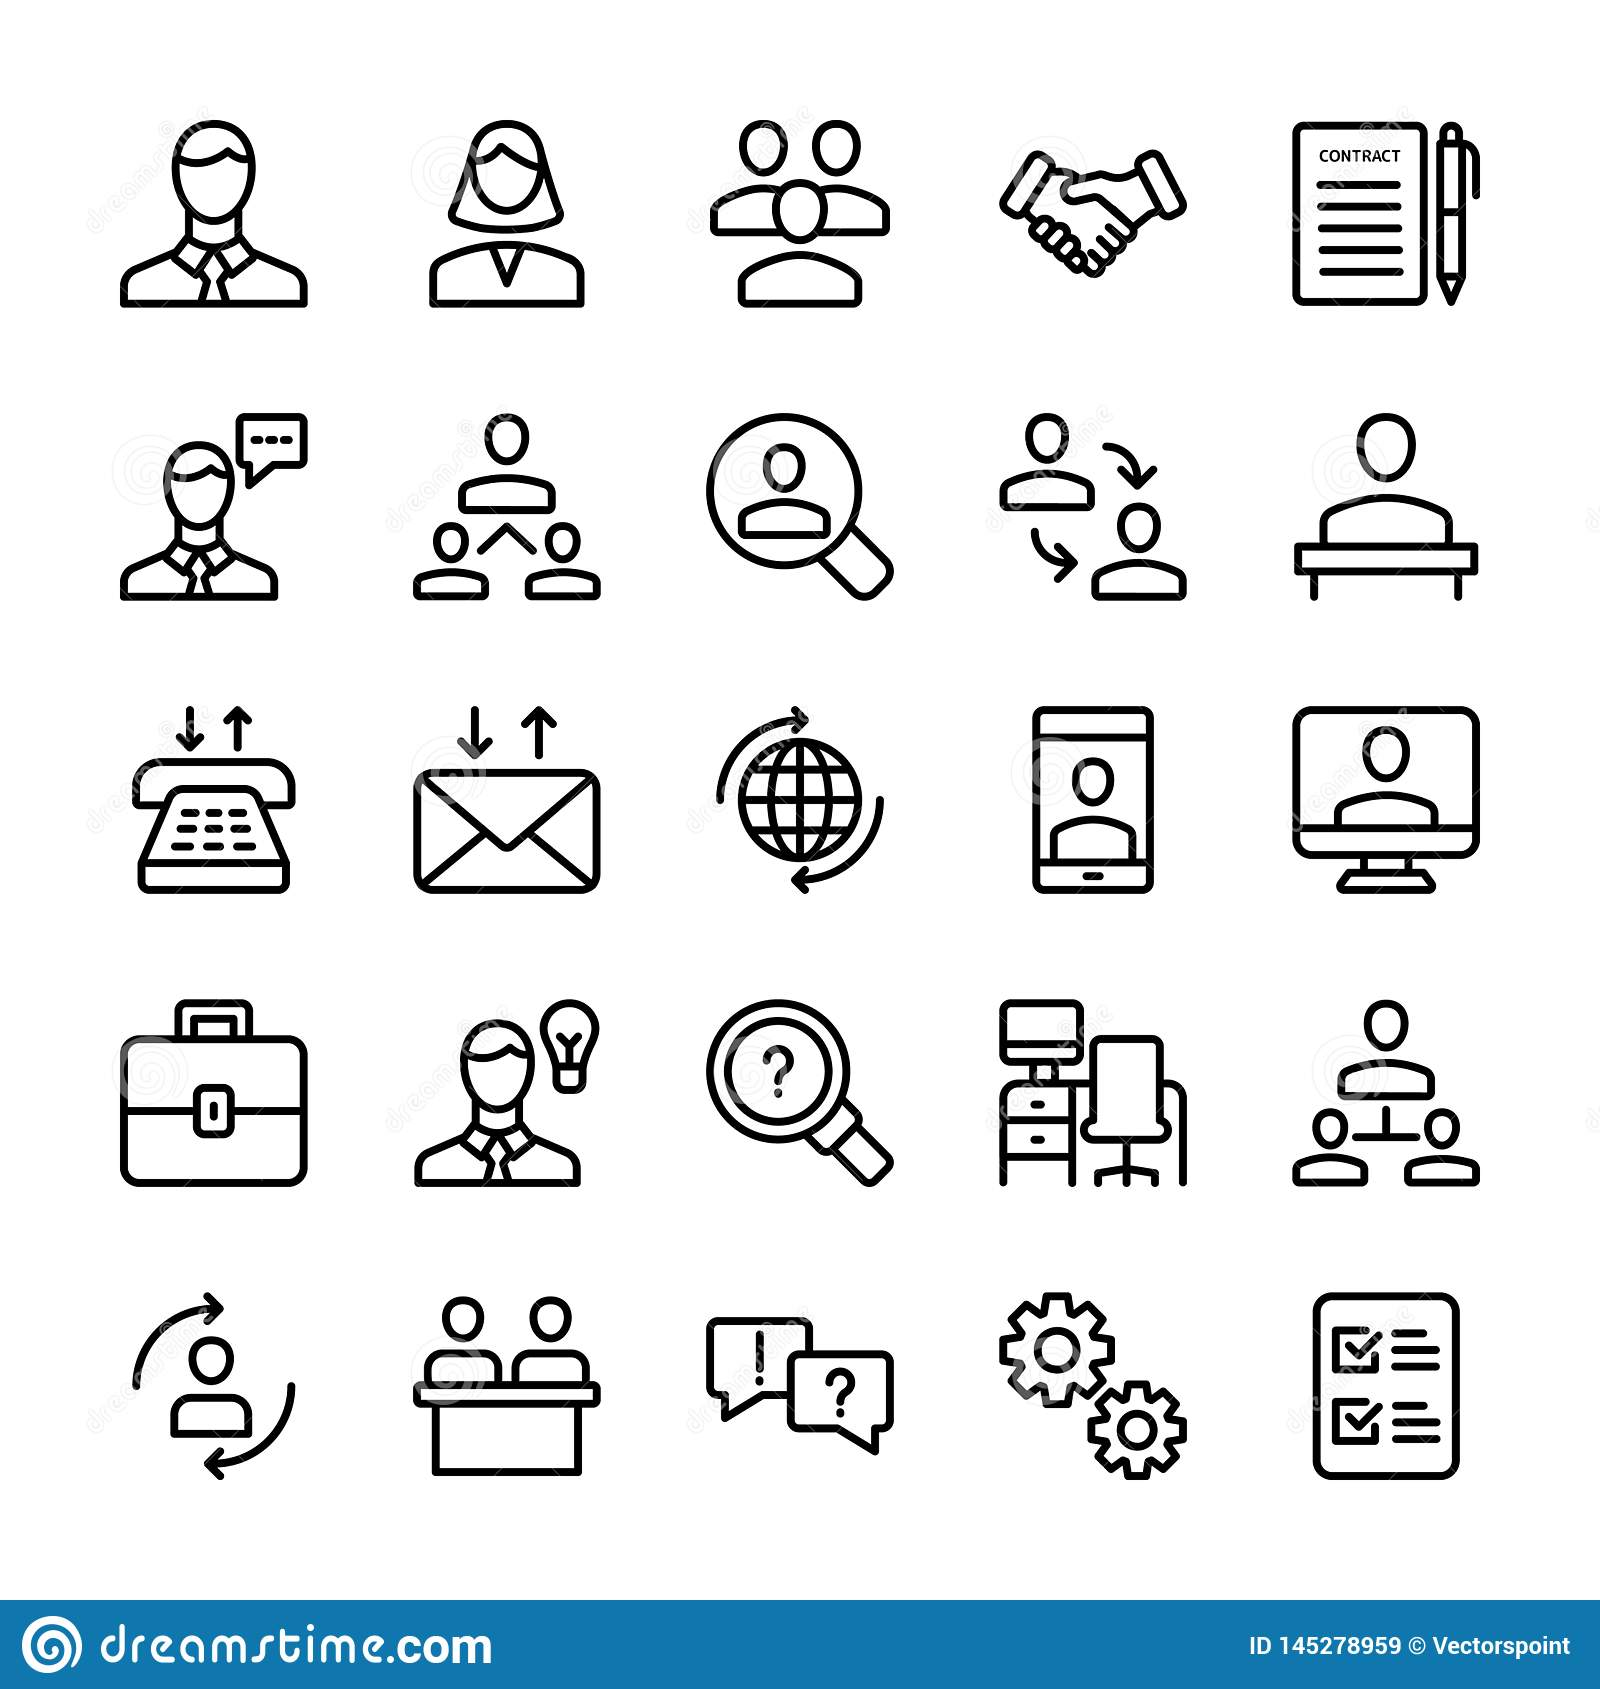 Meeting, Workplace Line Icons Pack